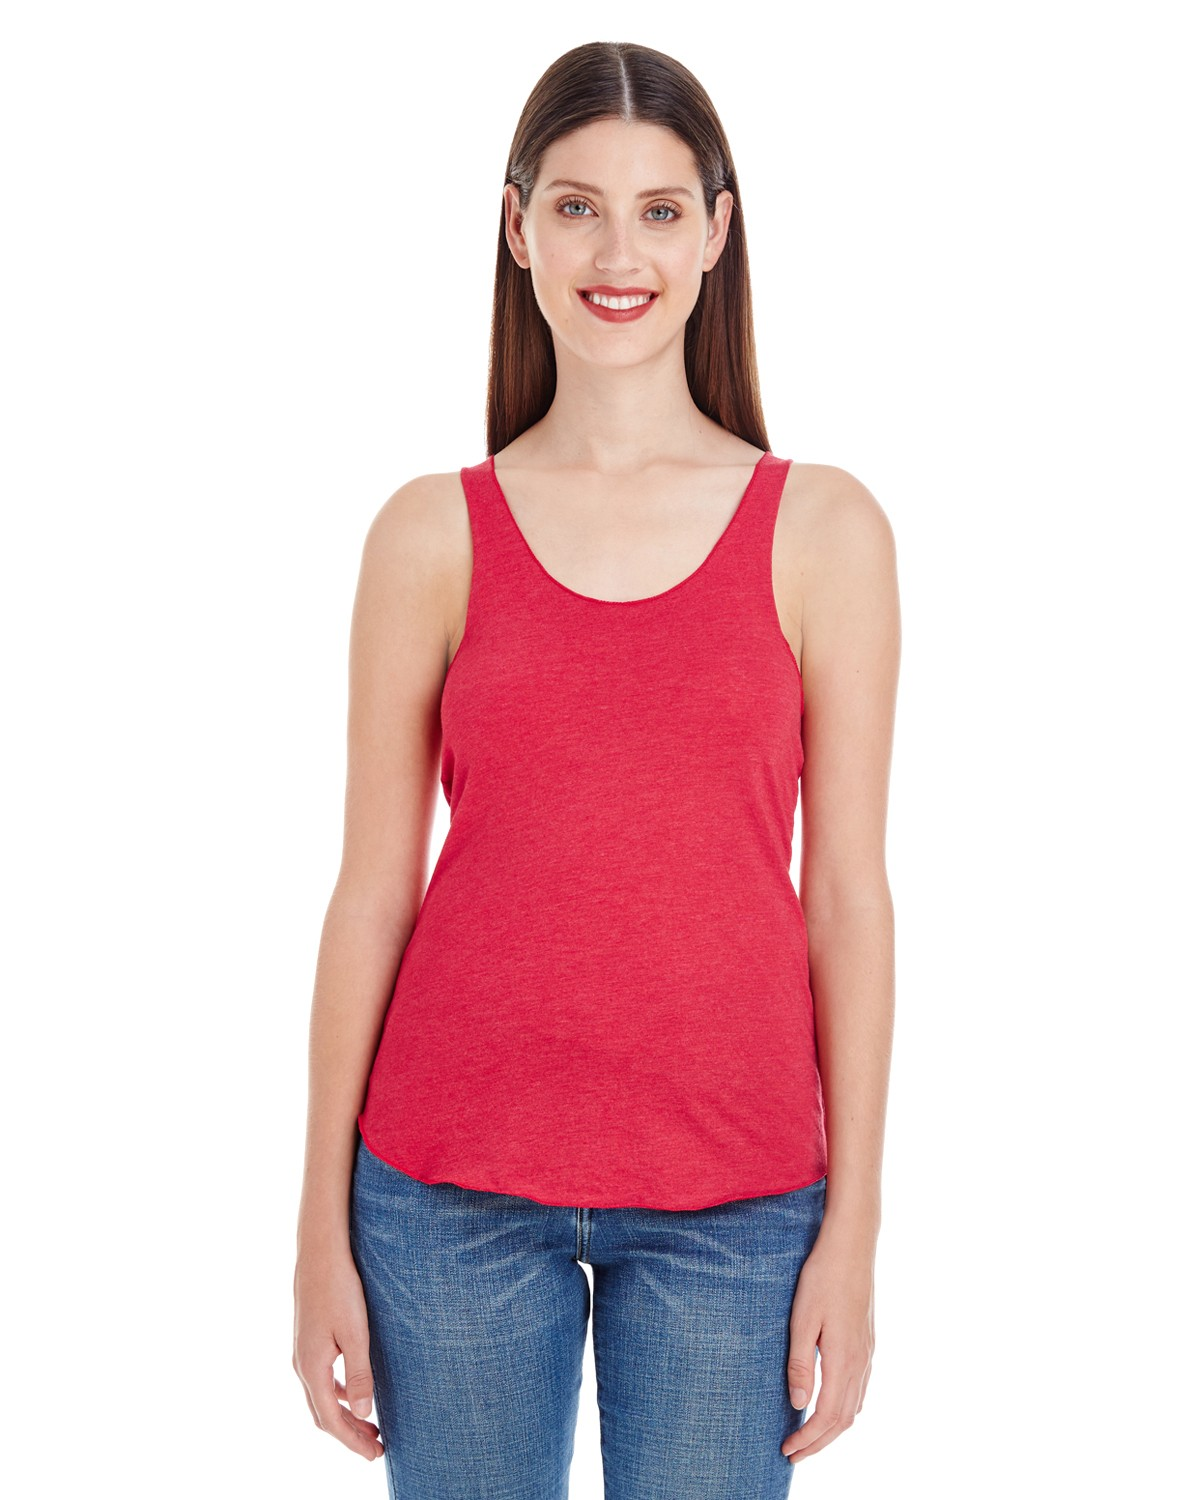 BB308W American Apparel HEATHER RED